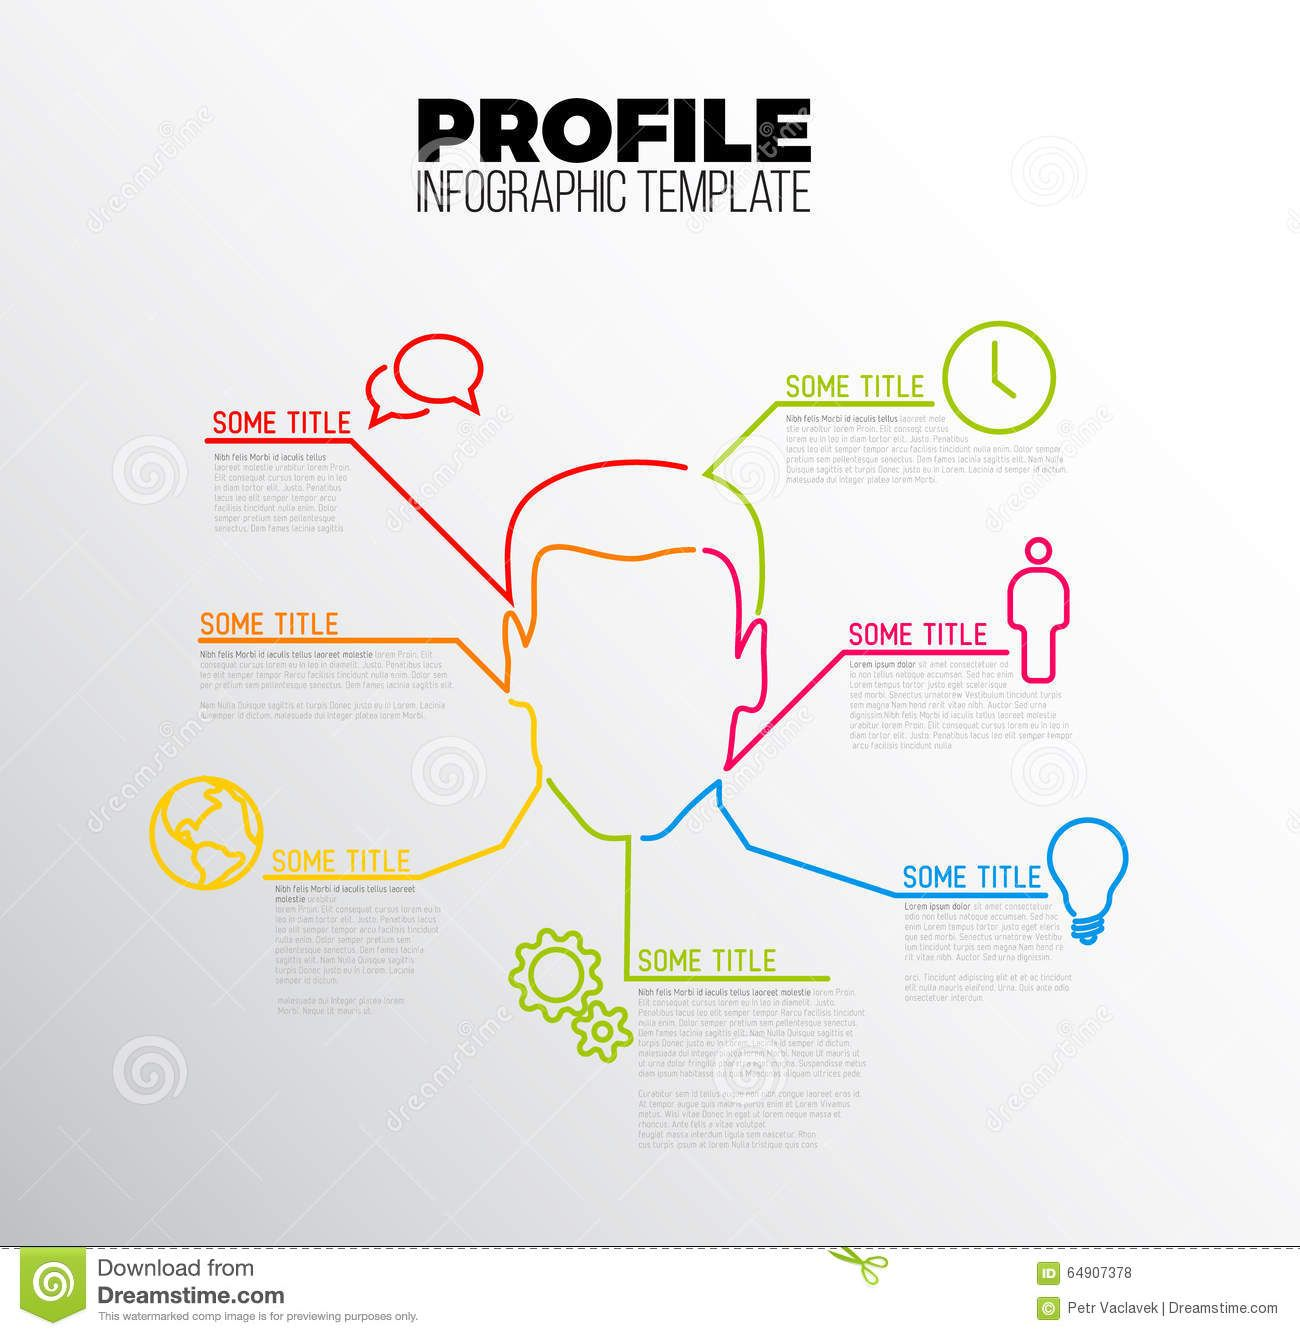 Image Result For Infographic User Profile Infographic Templates Infographic Templates